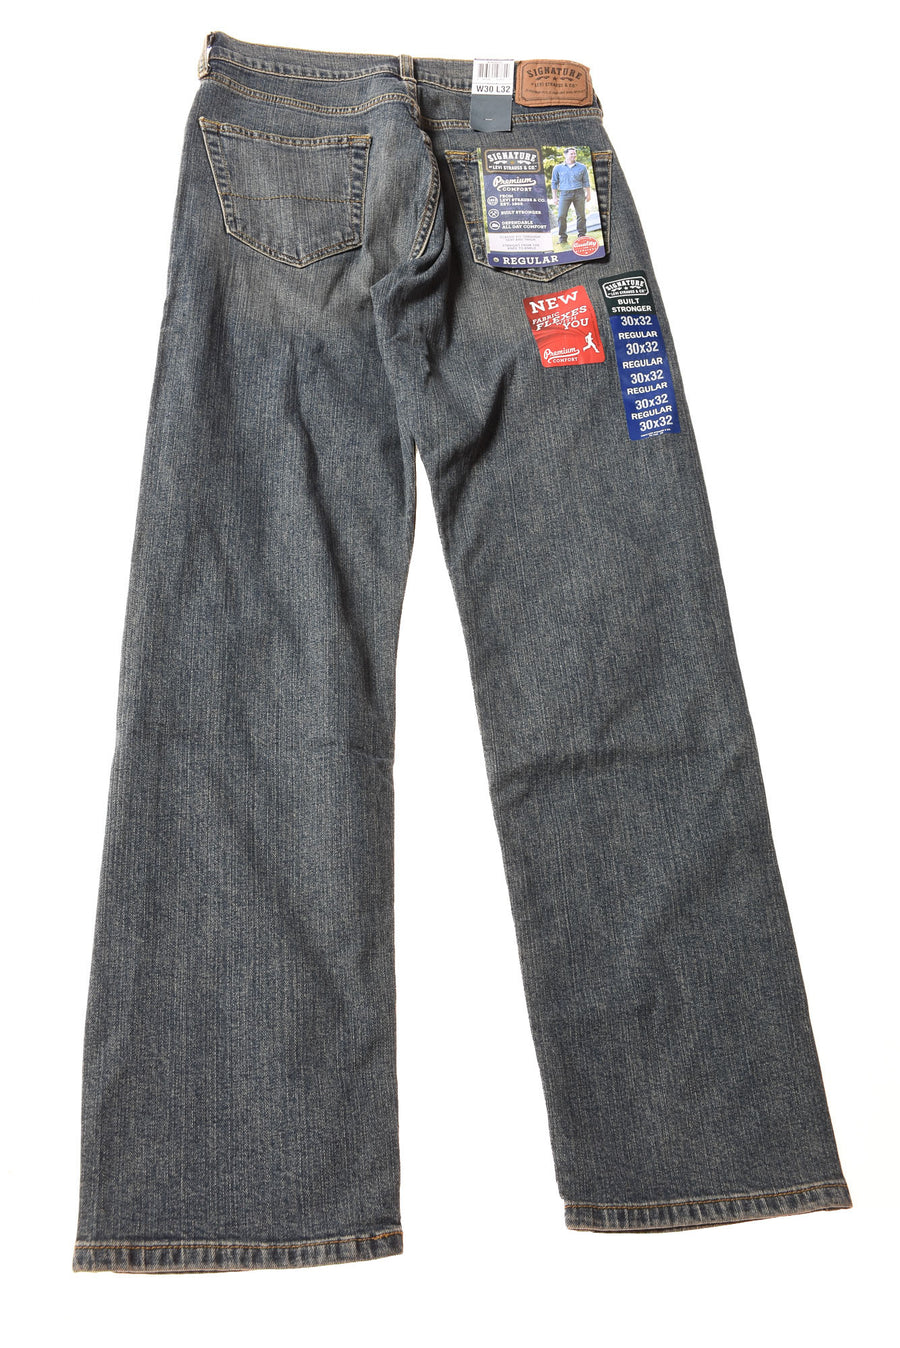 NEW Levi's Men's Jeans 30x32 Blue